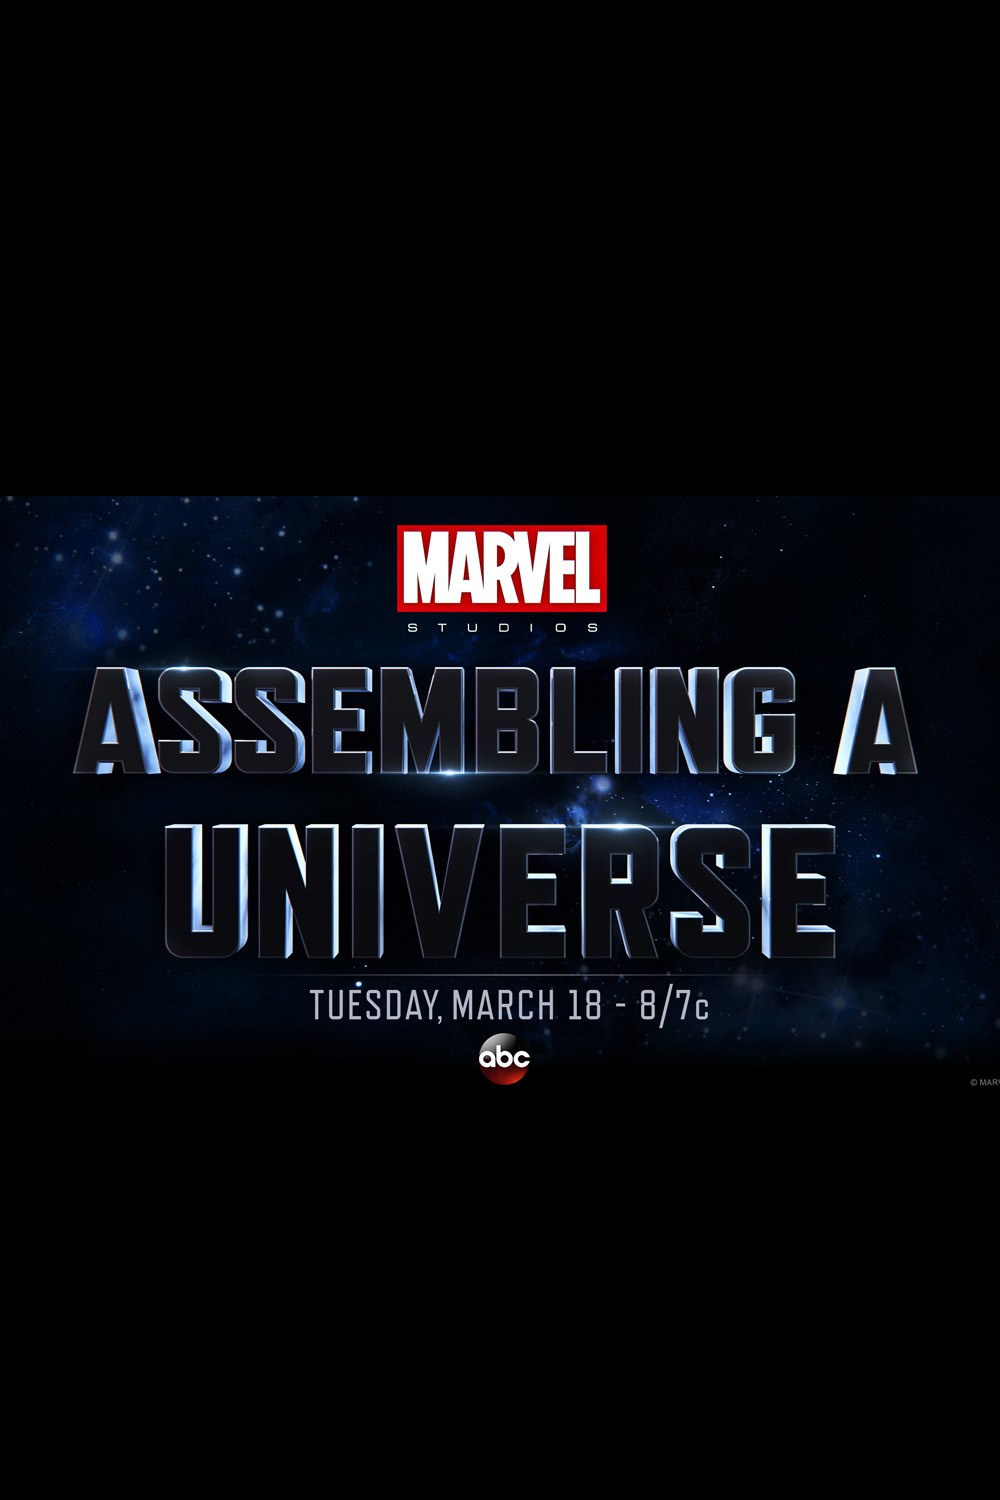 Marvel Studios Assembling A Universe on 3 Way Crossover